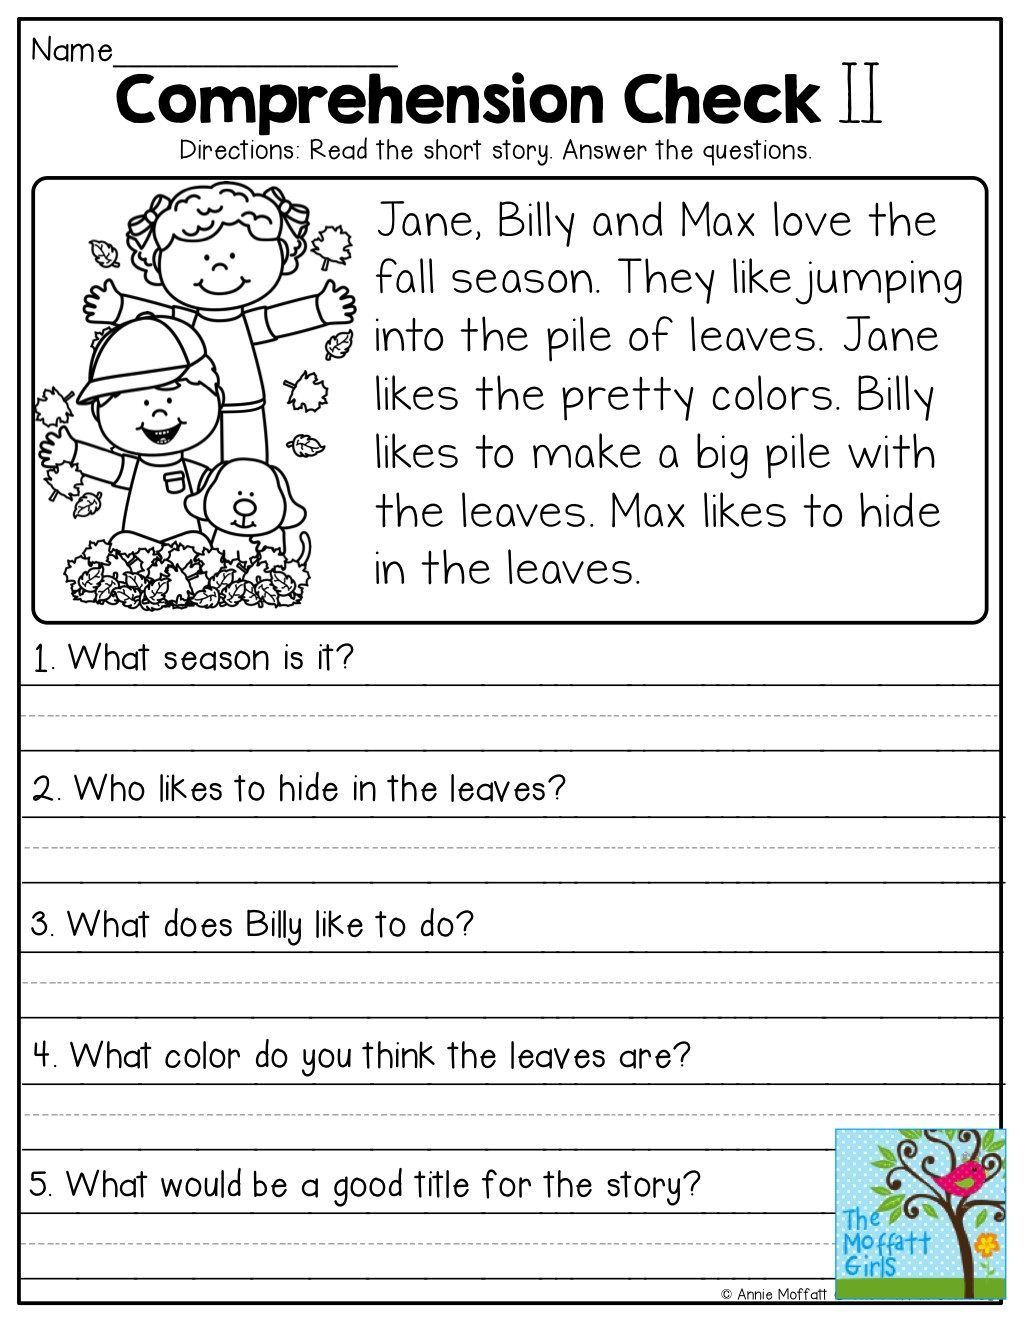 Worksheet Ideas Kindergarten La Worksheets Free Printable